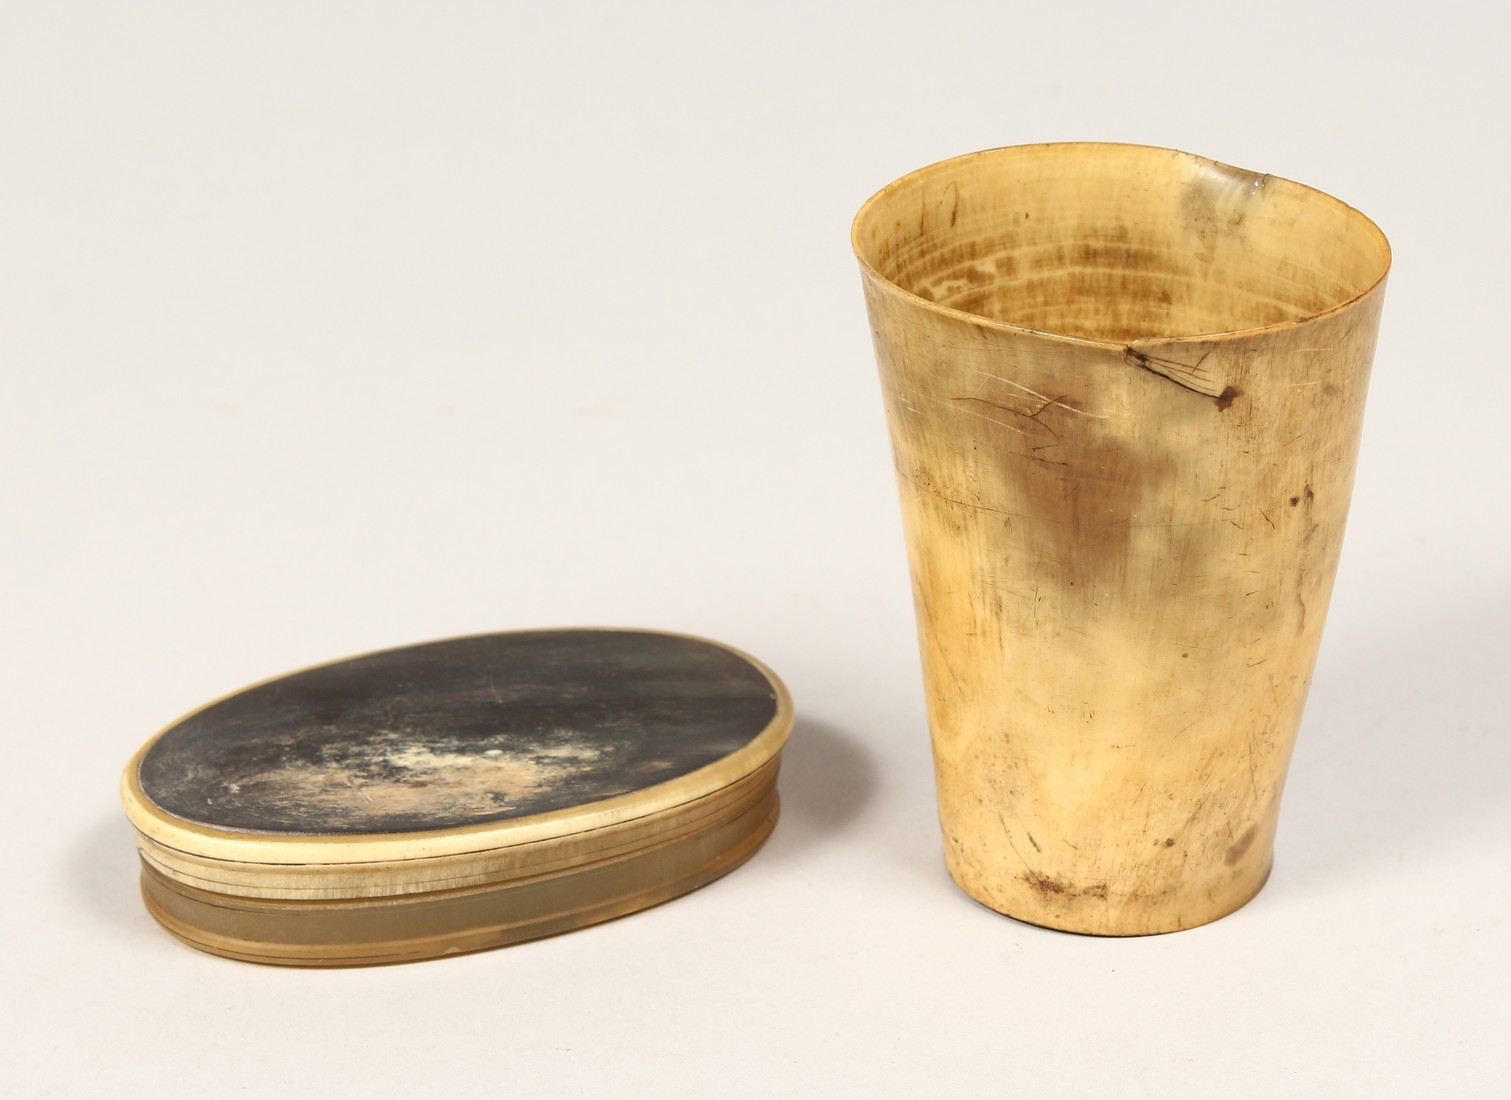 TWO OLD HORN PIECES